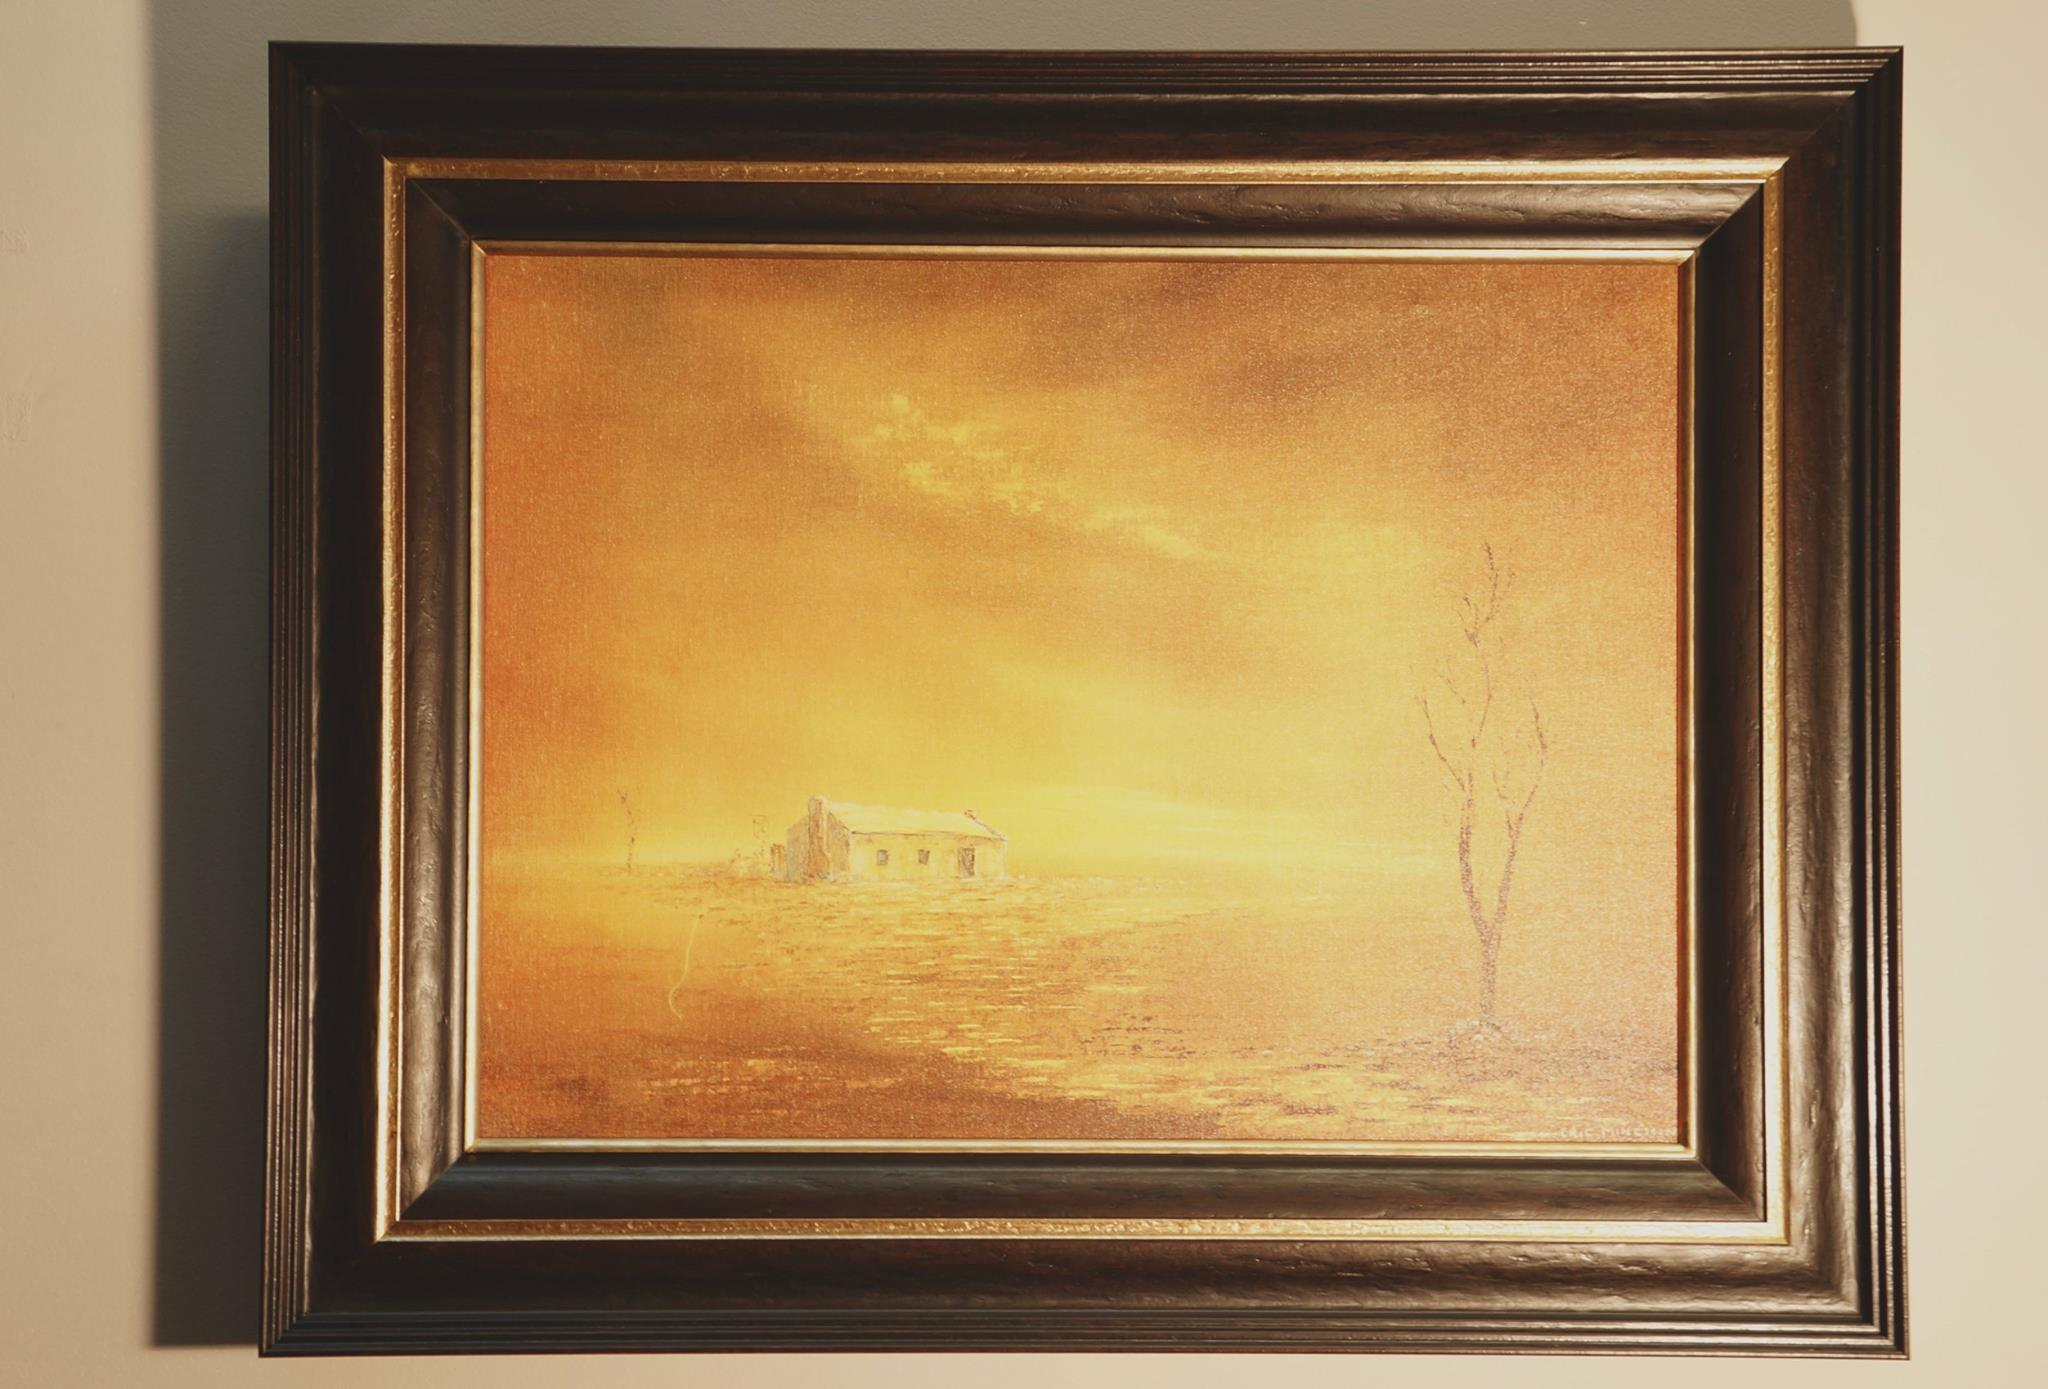 Formal framing of landscape oil painting